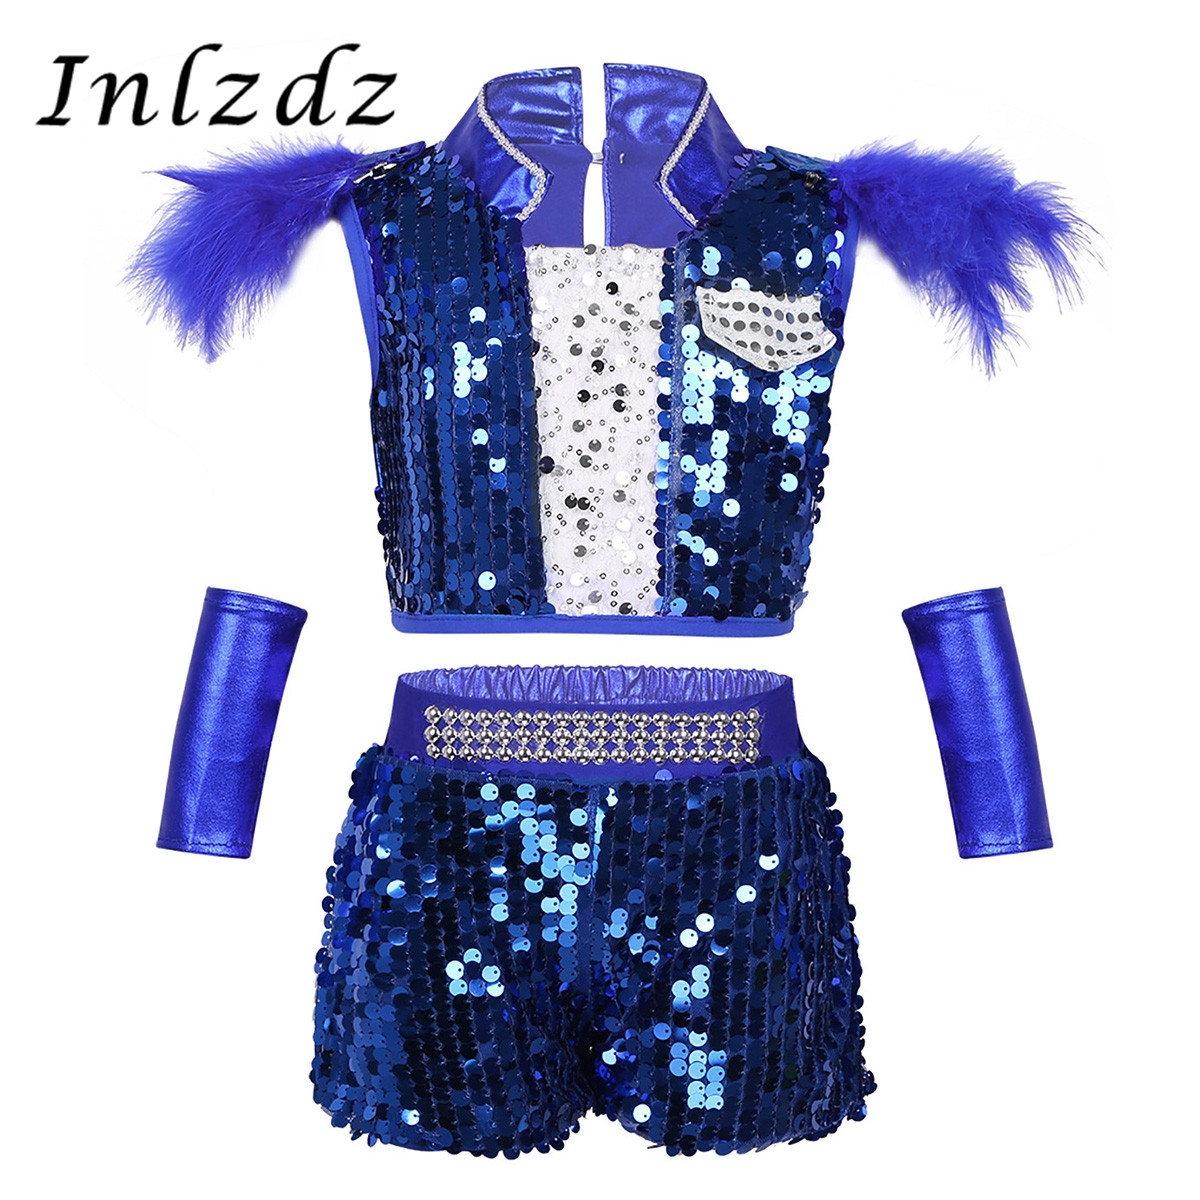 Kids Boys Girls Gymnastics  Jazz Leotard Costumes Outfit Shiny Sequins Crop Top With Short For Hip-hop Street Dancing Dancewear